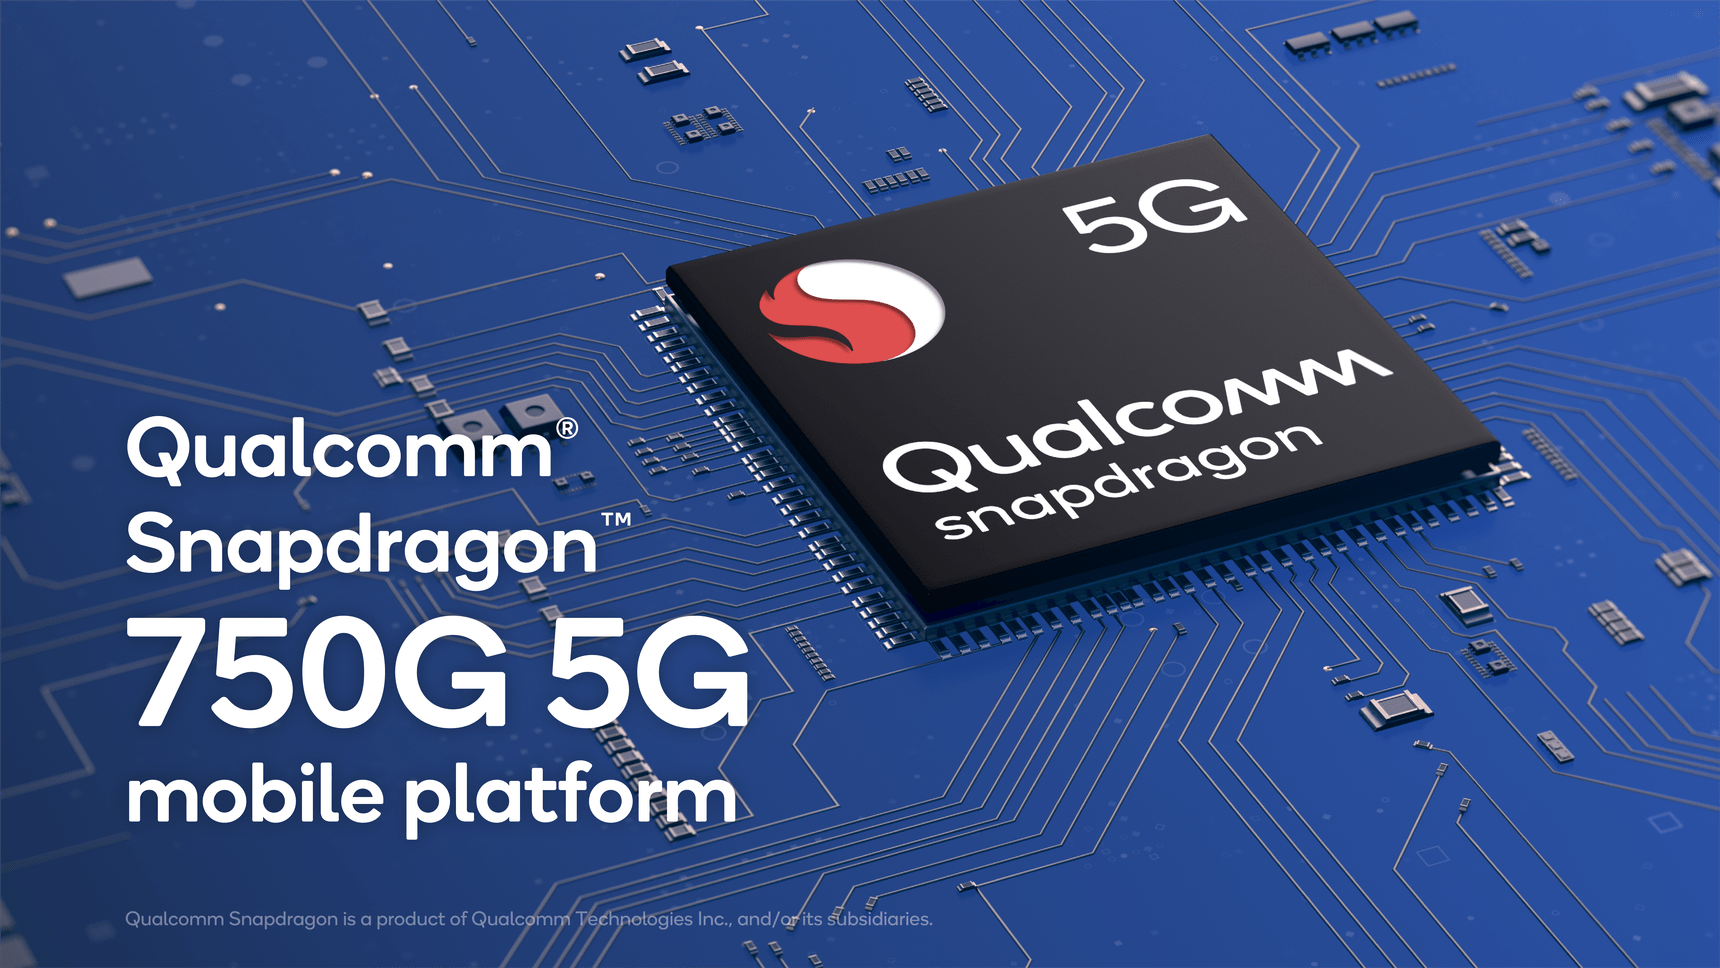 Qualcomm Snapdragon 750G wants to boost gaming in mid-range 5G smartphones